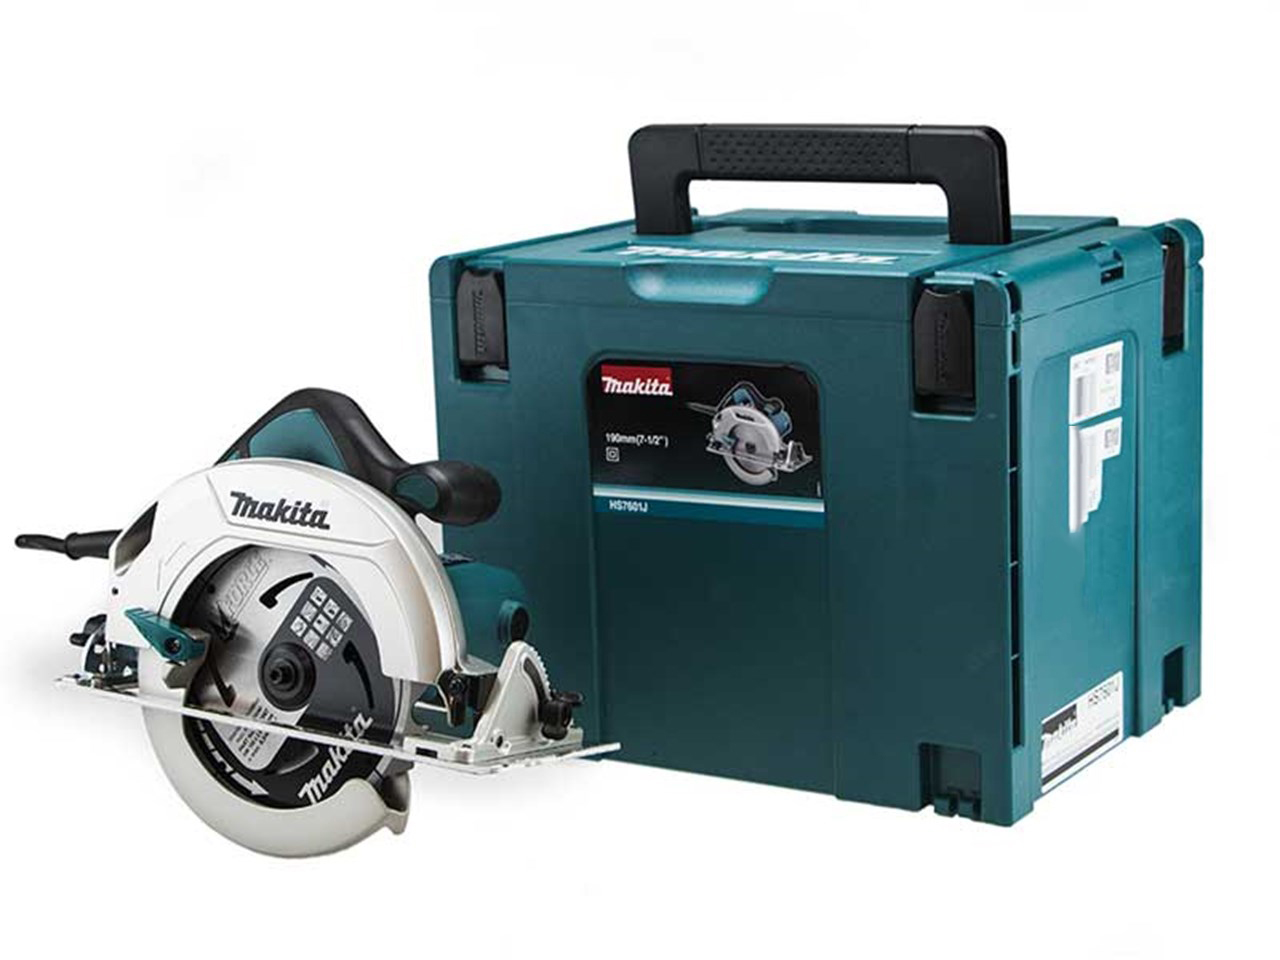 Makita HS7601J 110V 190mm Circular Saw - Single Action Lever for Quick Adjustment of Cutting Depth